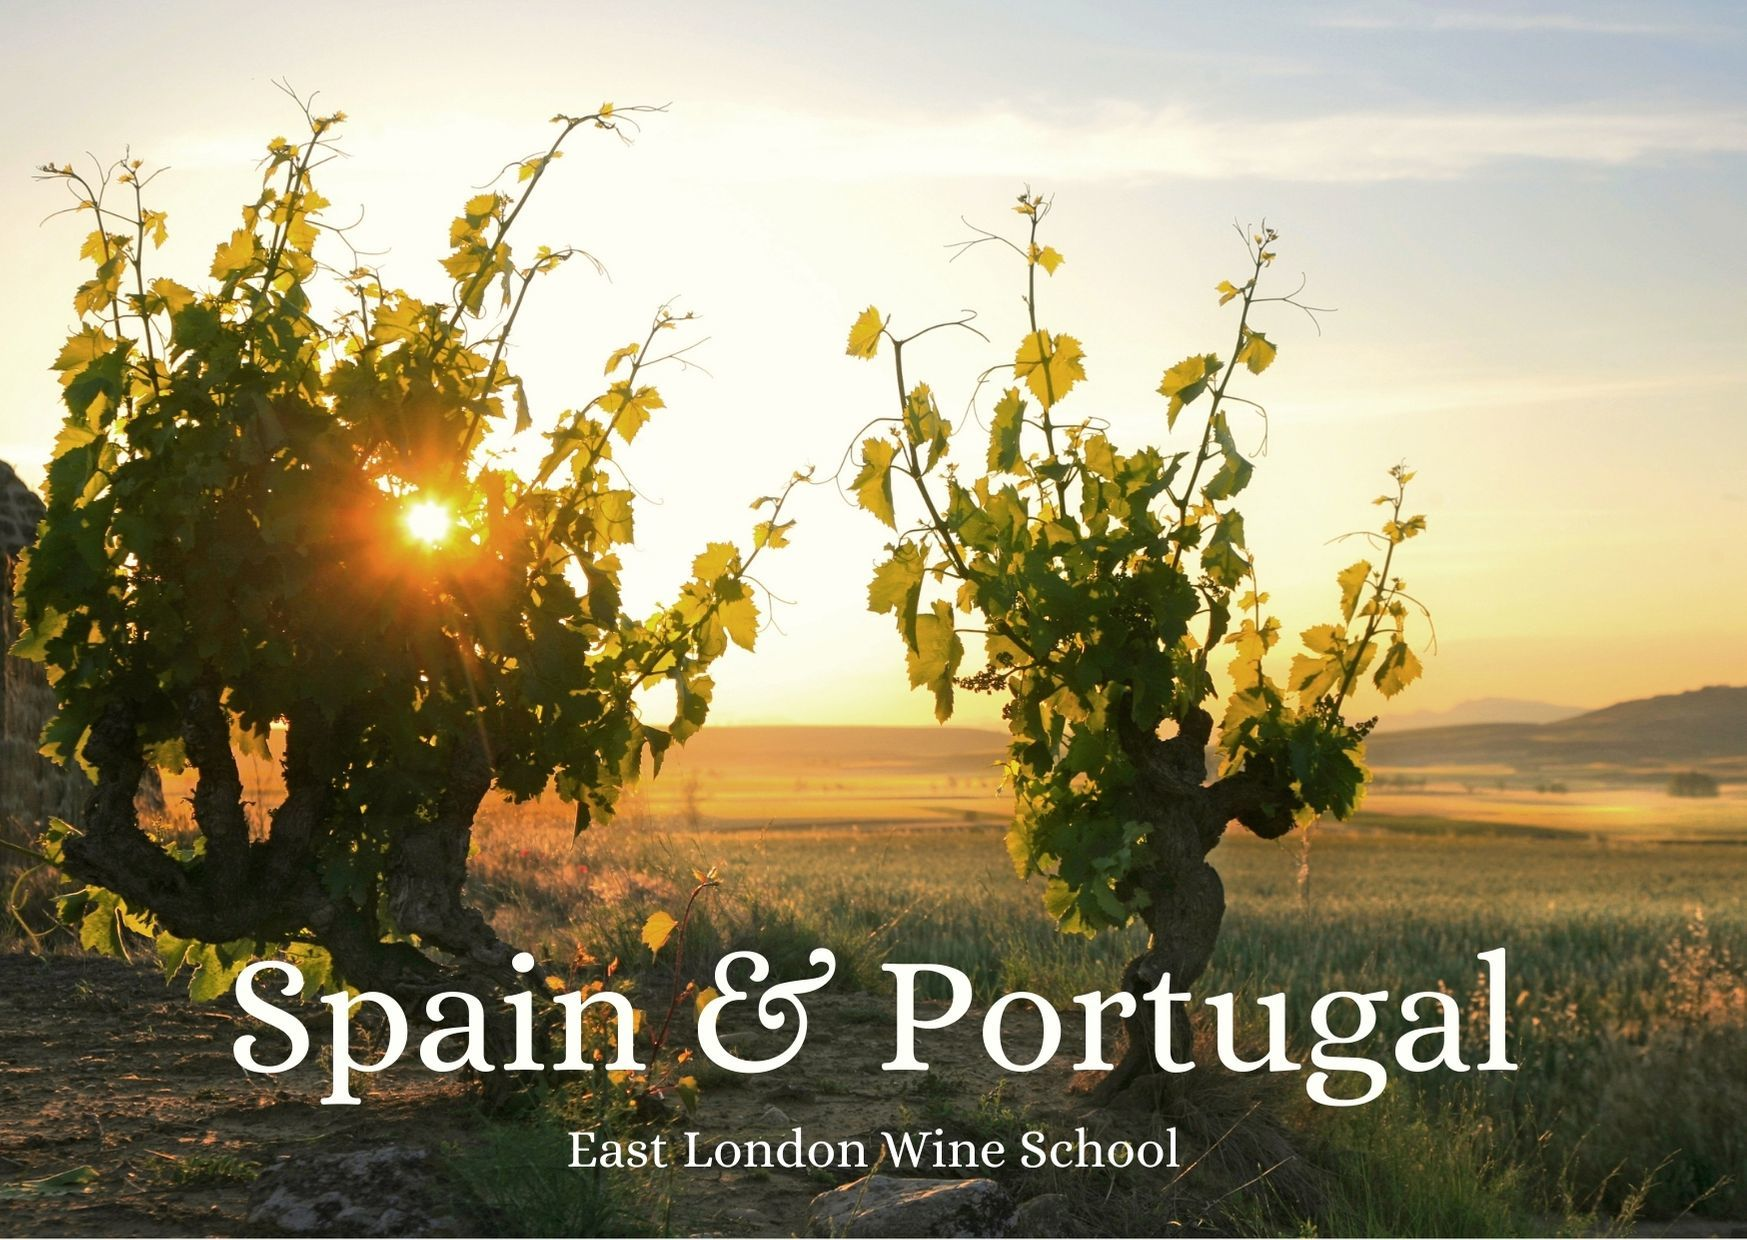 Wines of Spain & Portugal